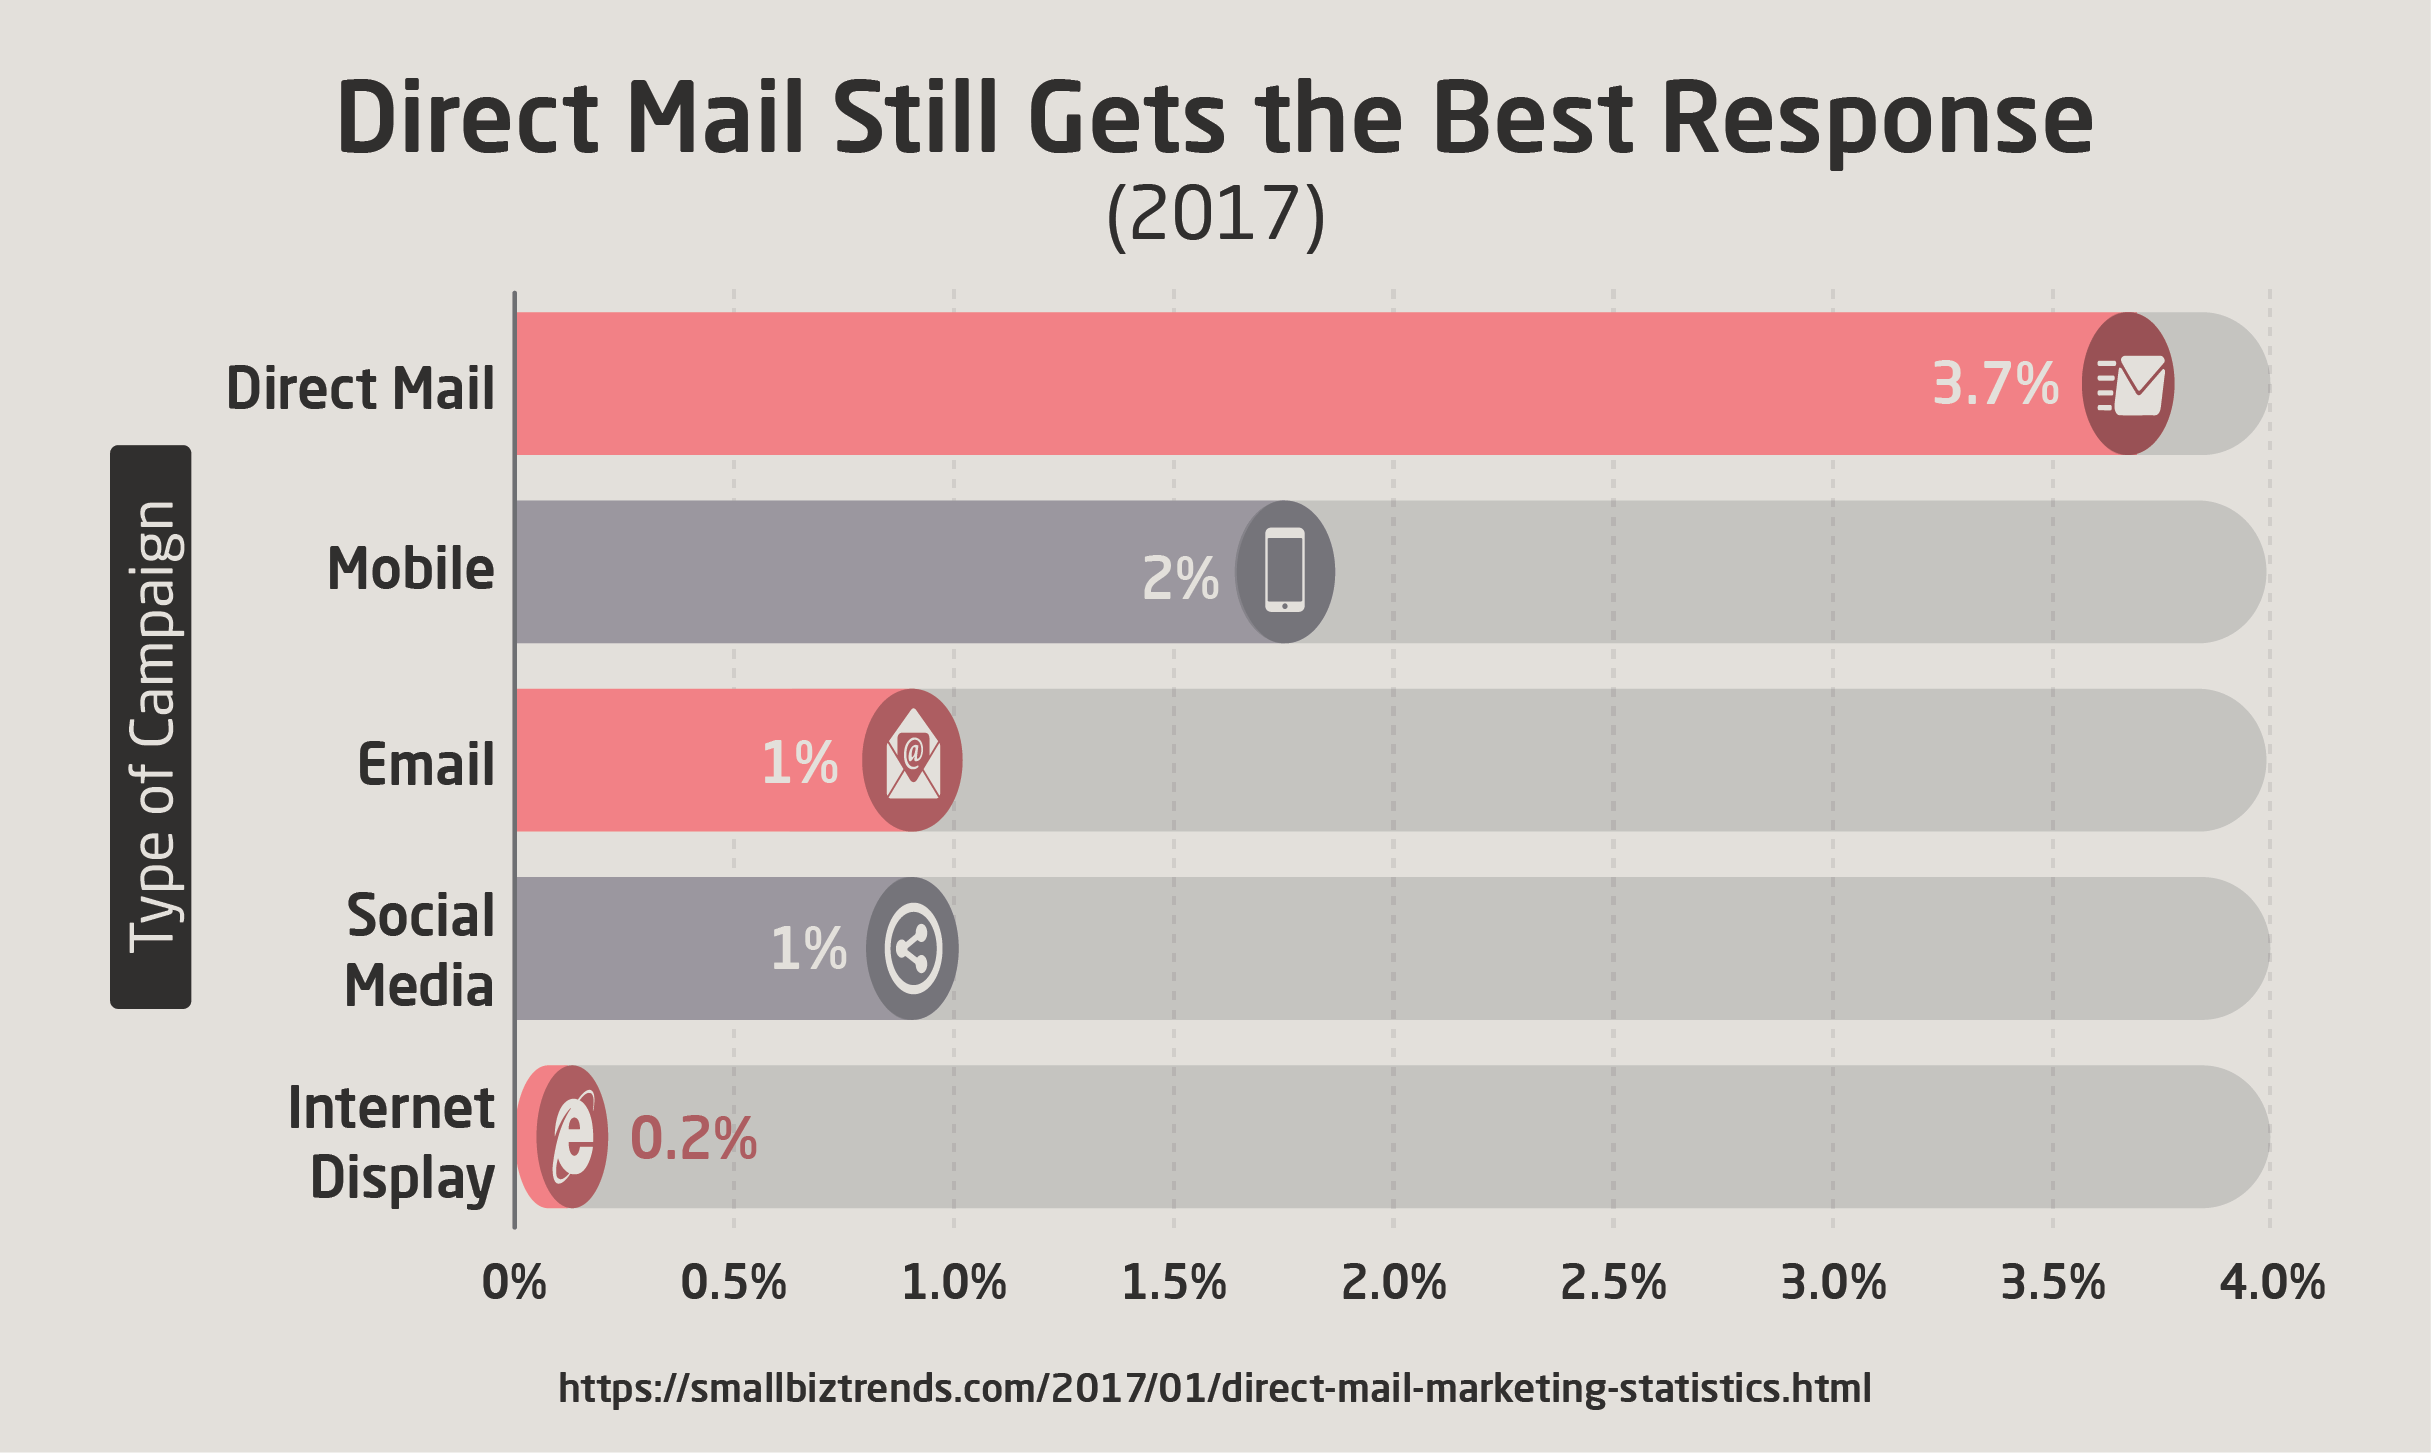 Direct Mail Still Gets the Best Response (2017)